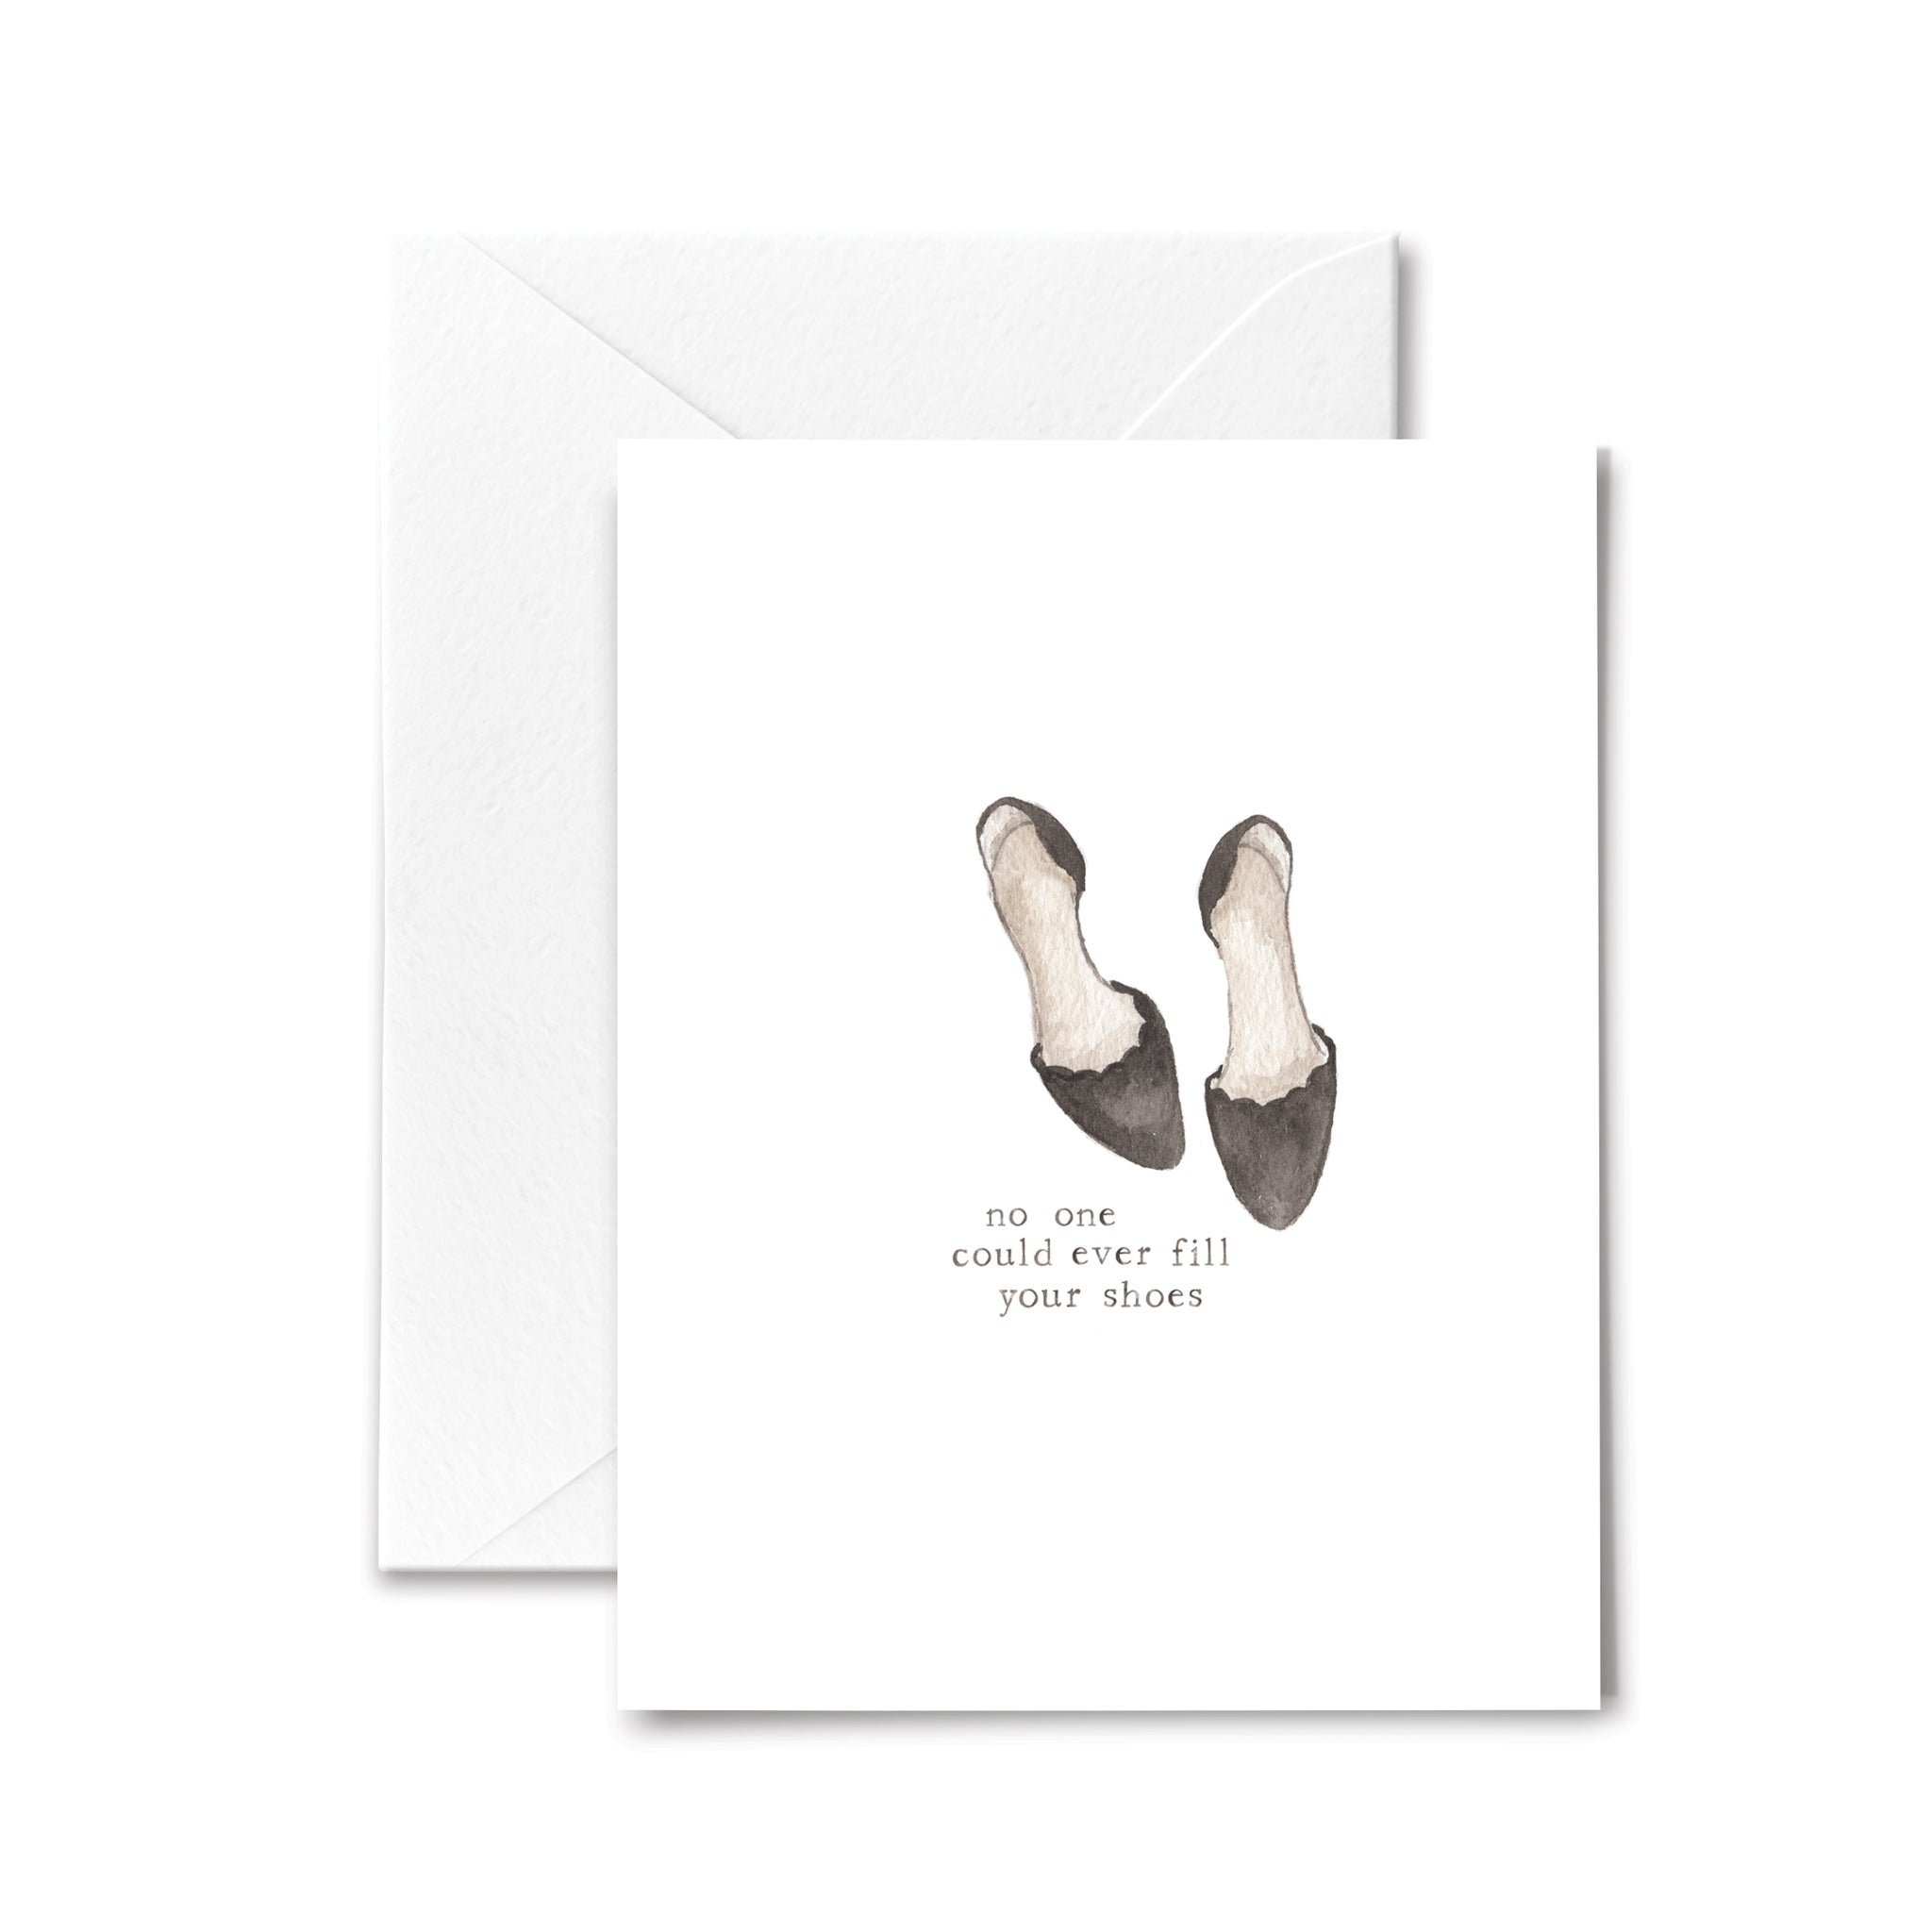 Best Wishes Card Fill Your Shoes Watercolor